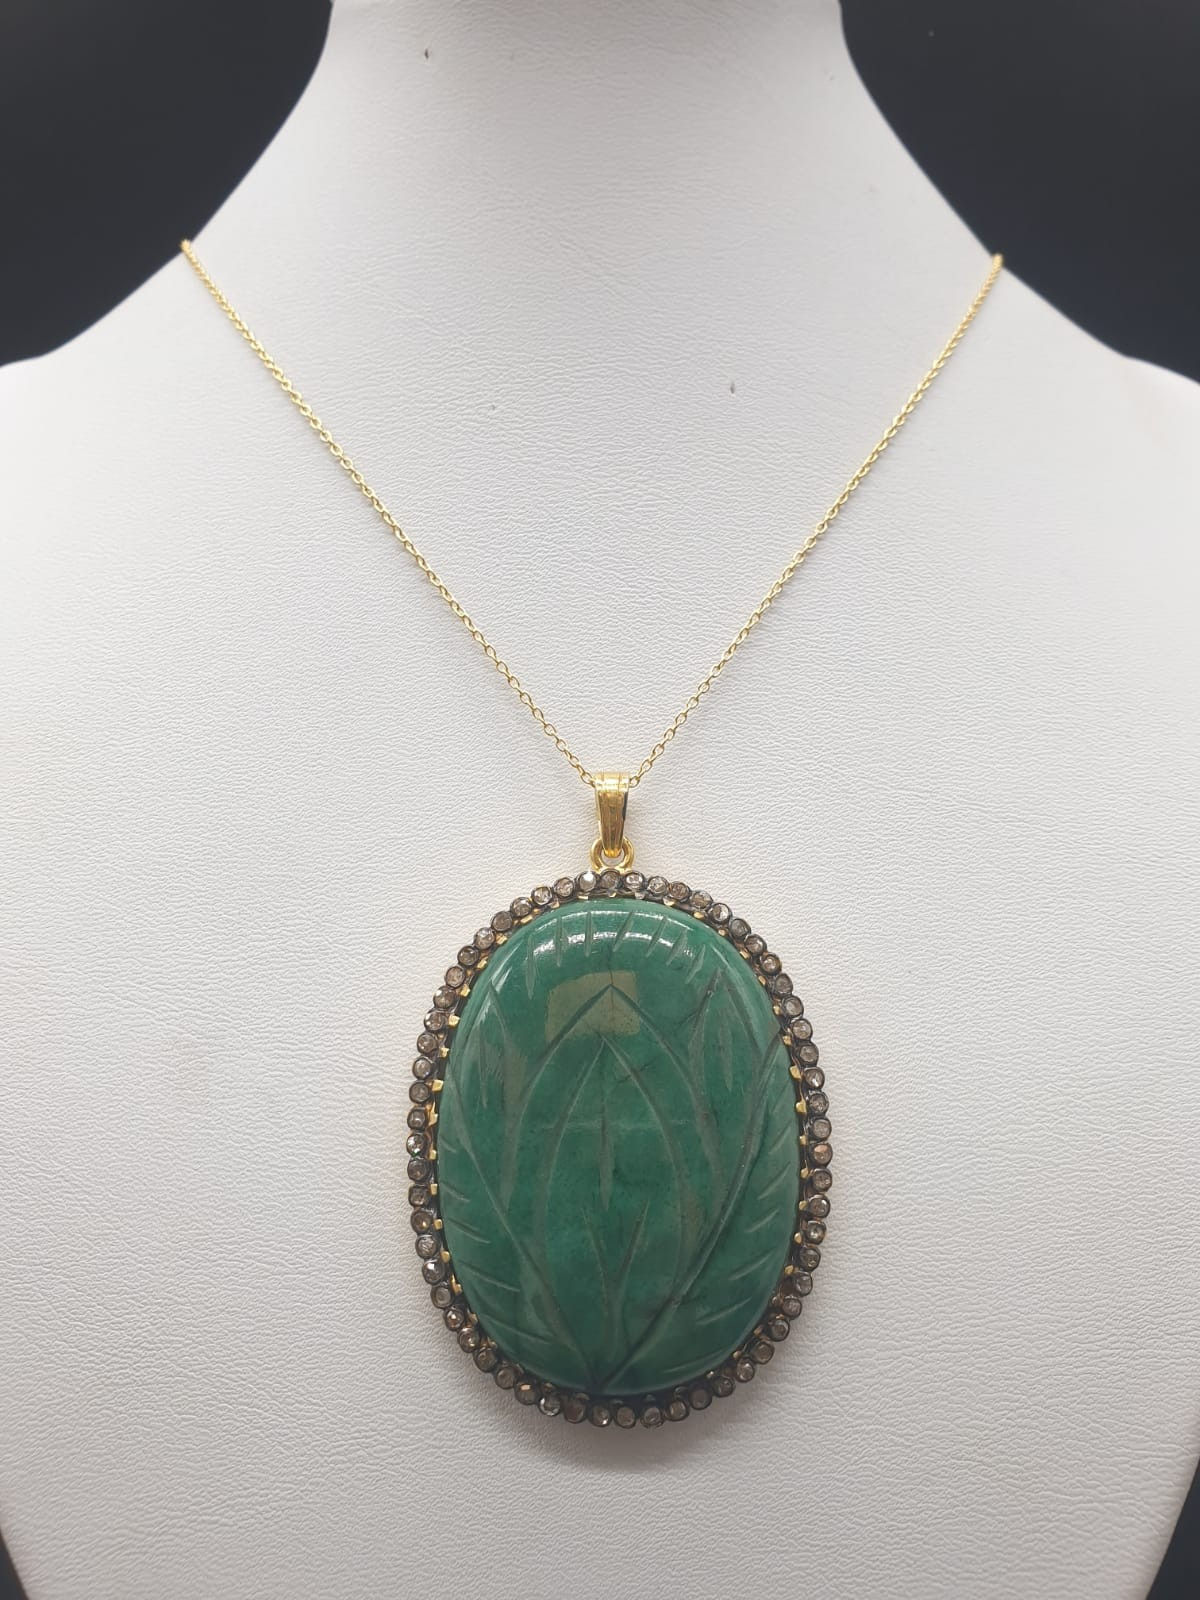 A carved emerald Pendant with a halo of rose cut diamonds in pave setting in sterling silver with